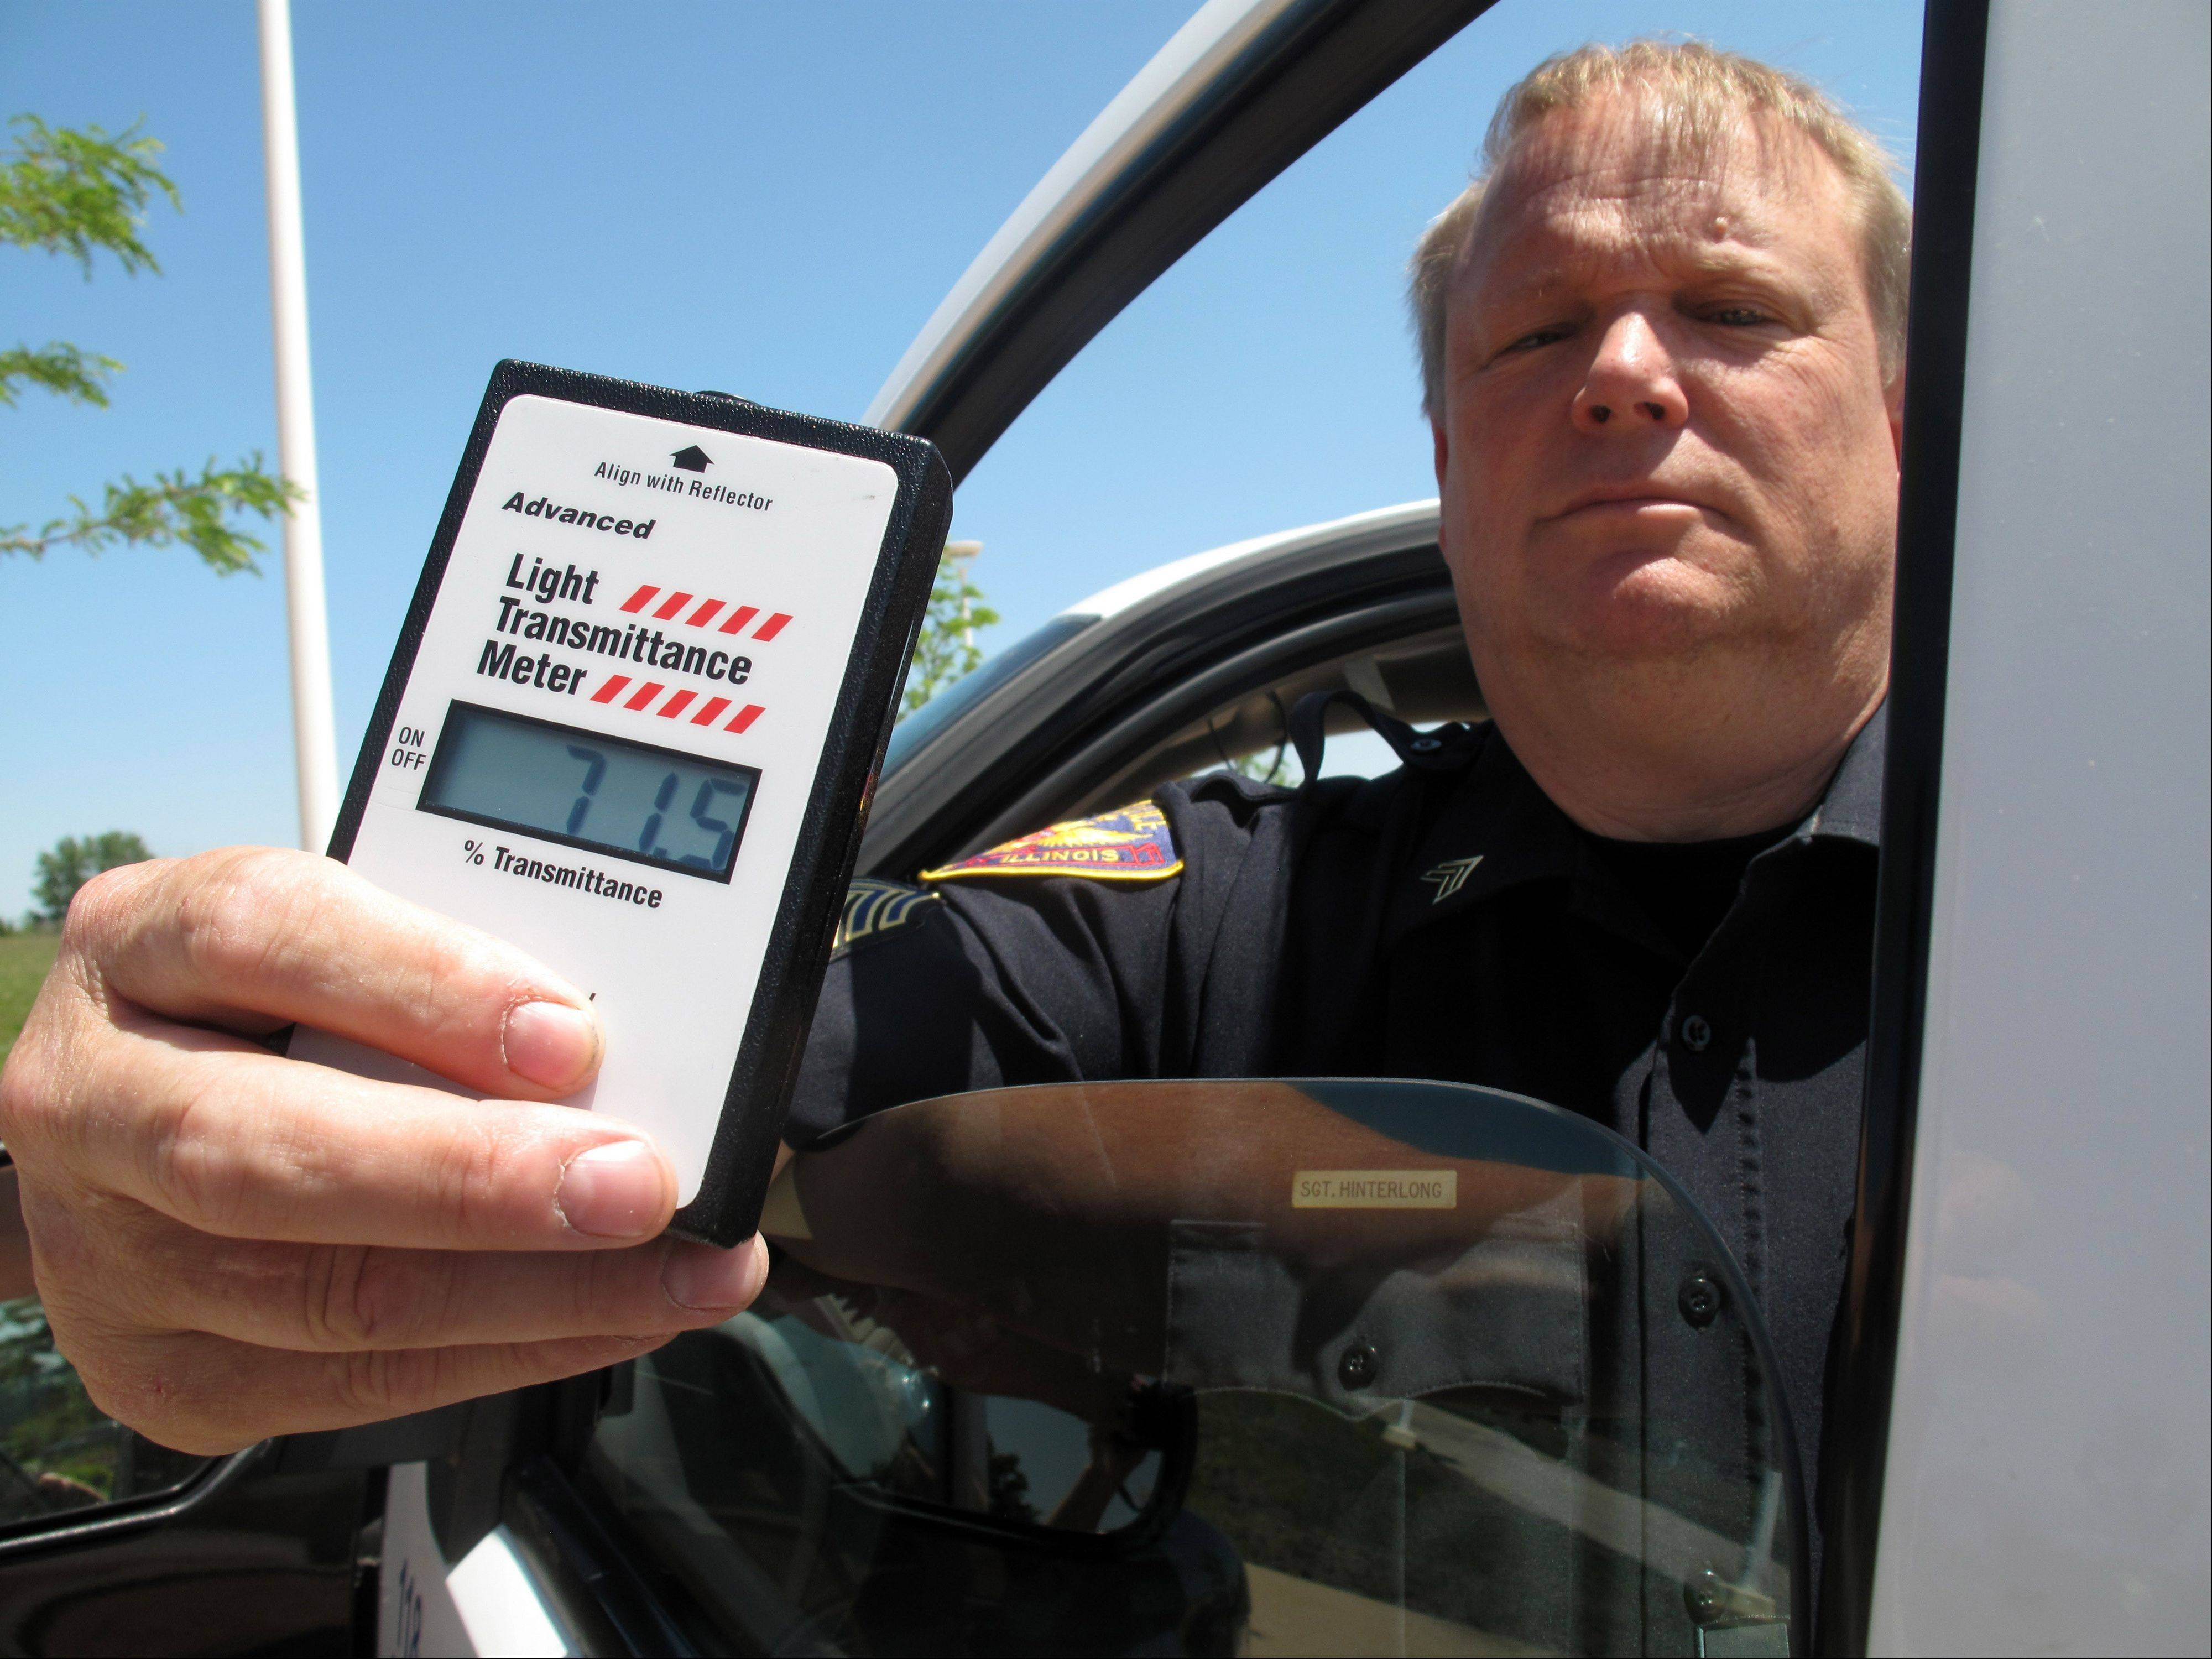 Aurora police use a light transmittance meter to determine the percentage of light that can shine through car windows. The measurement determines if a vehicle's windows comply with state standards regulating the appropriate amount of tint.